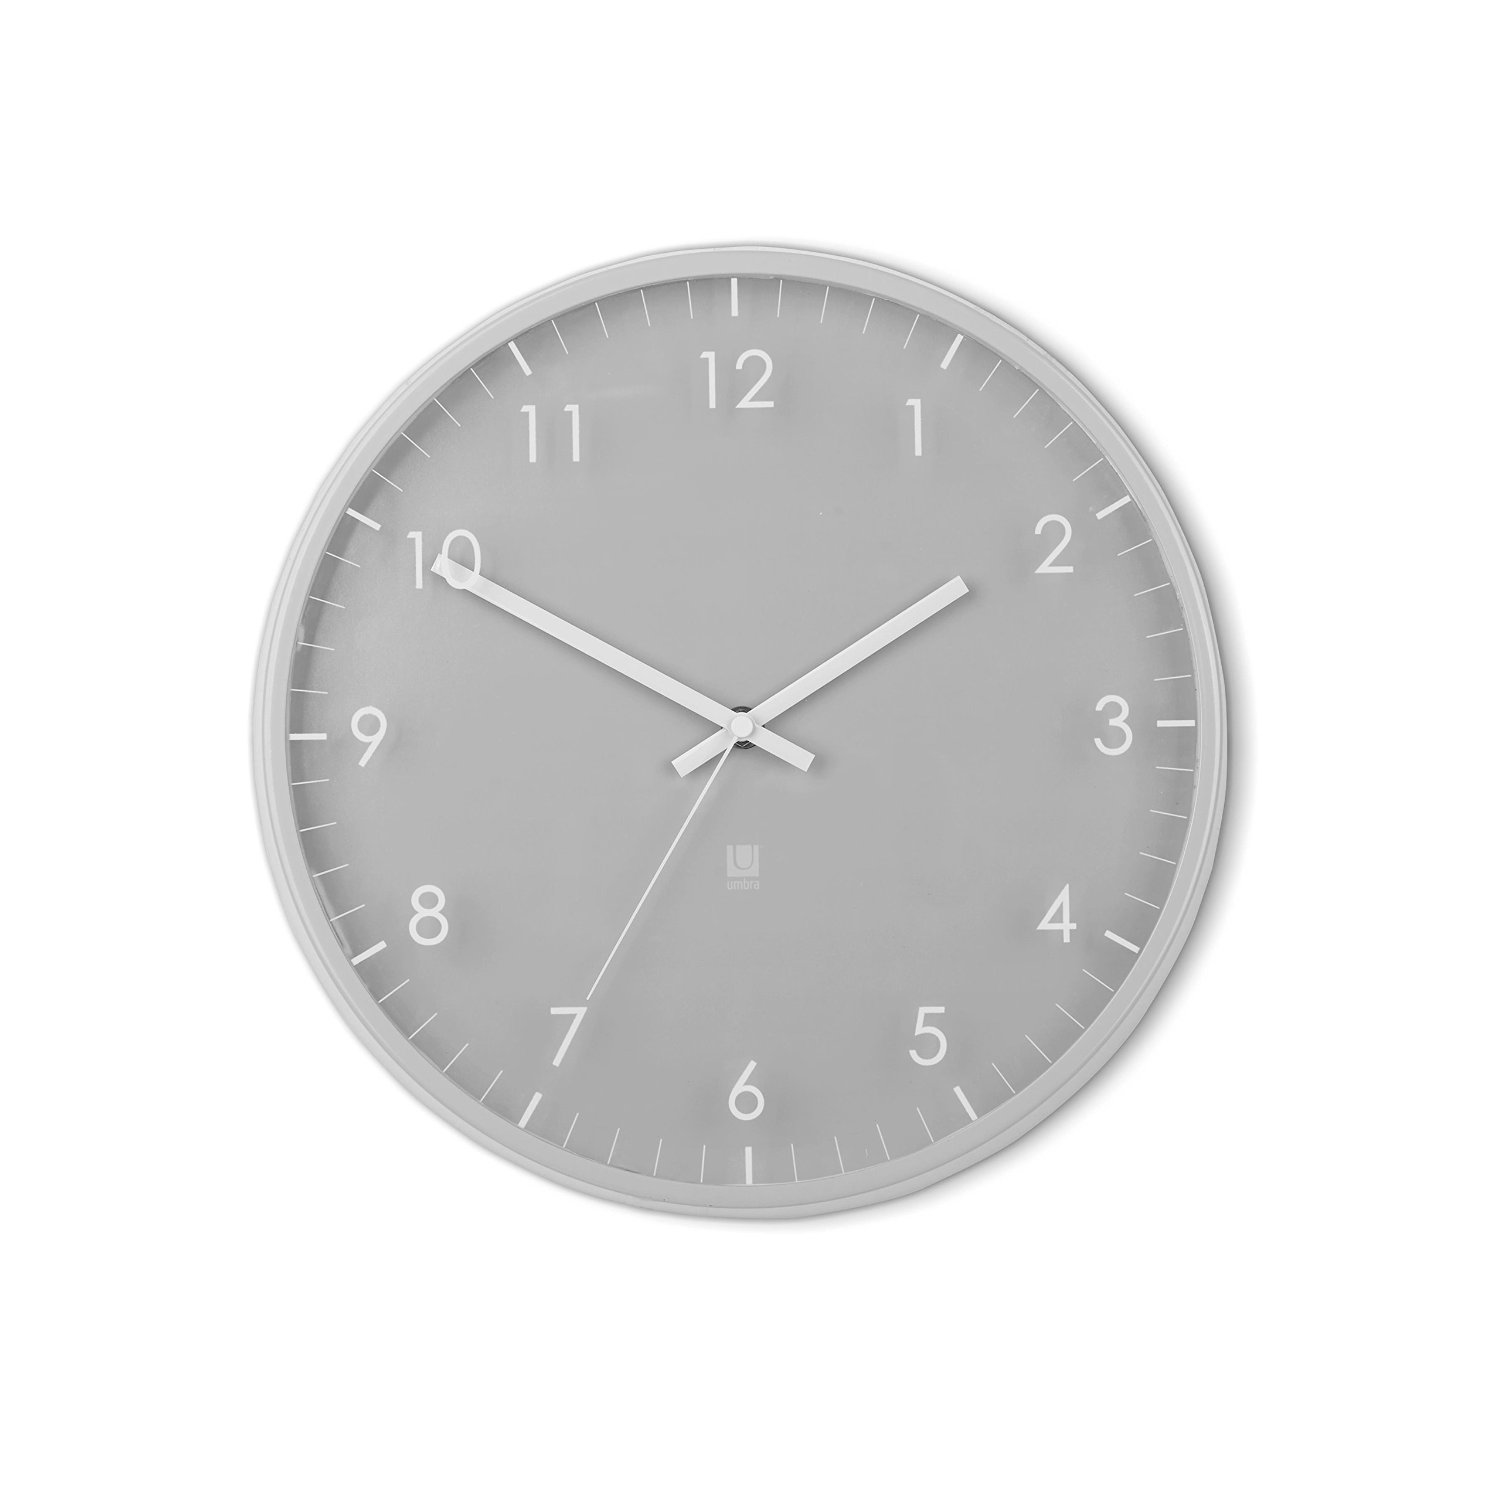 Umbra Pace Wall Clock, Gray